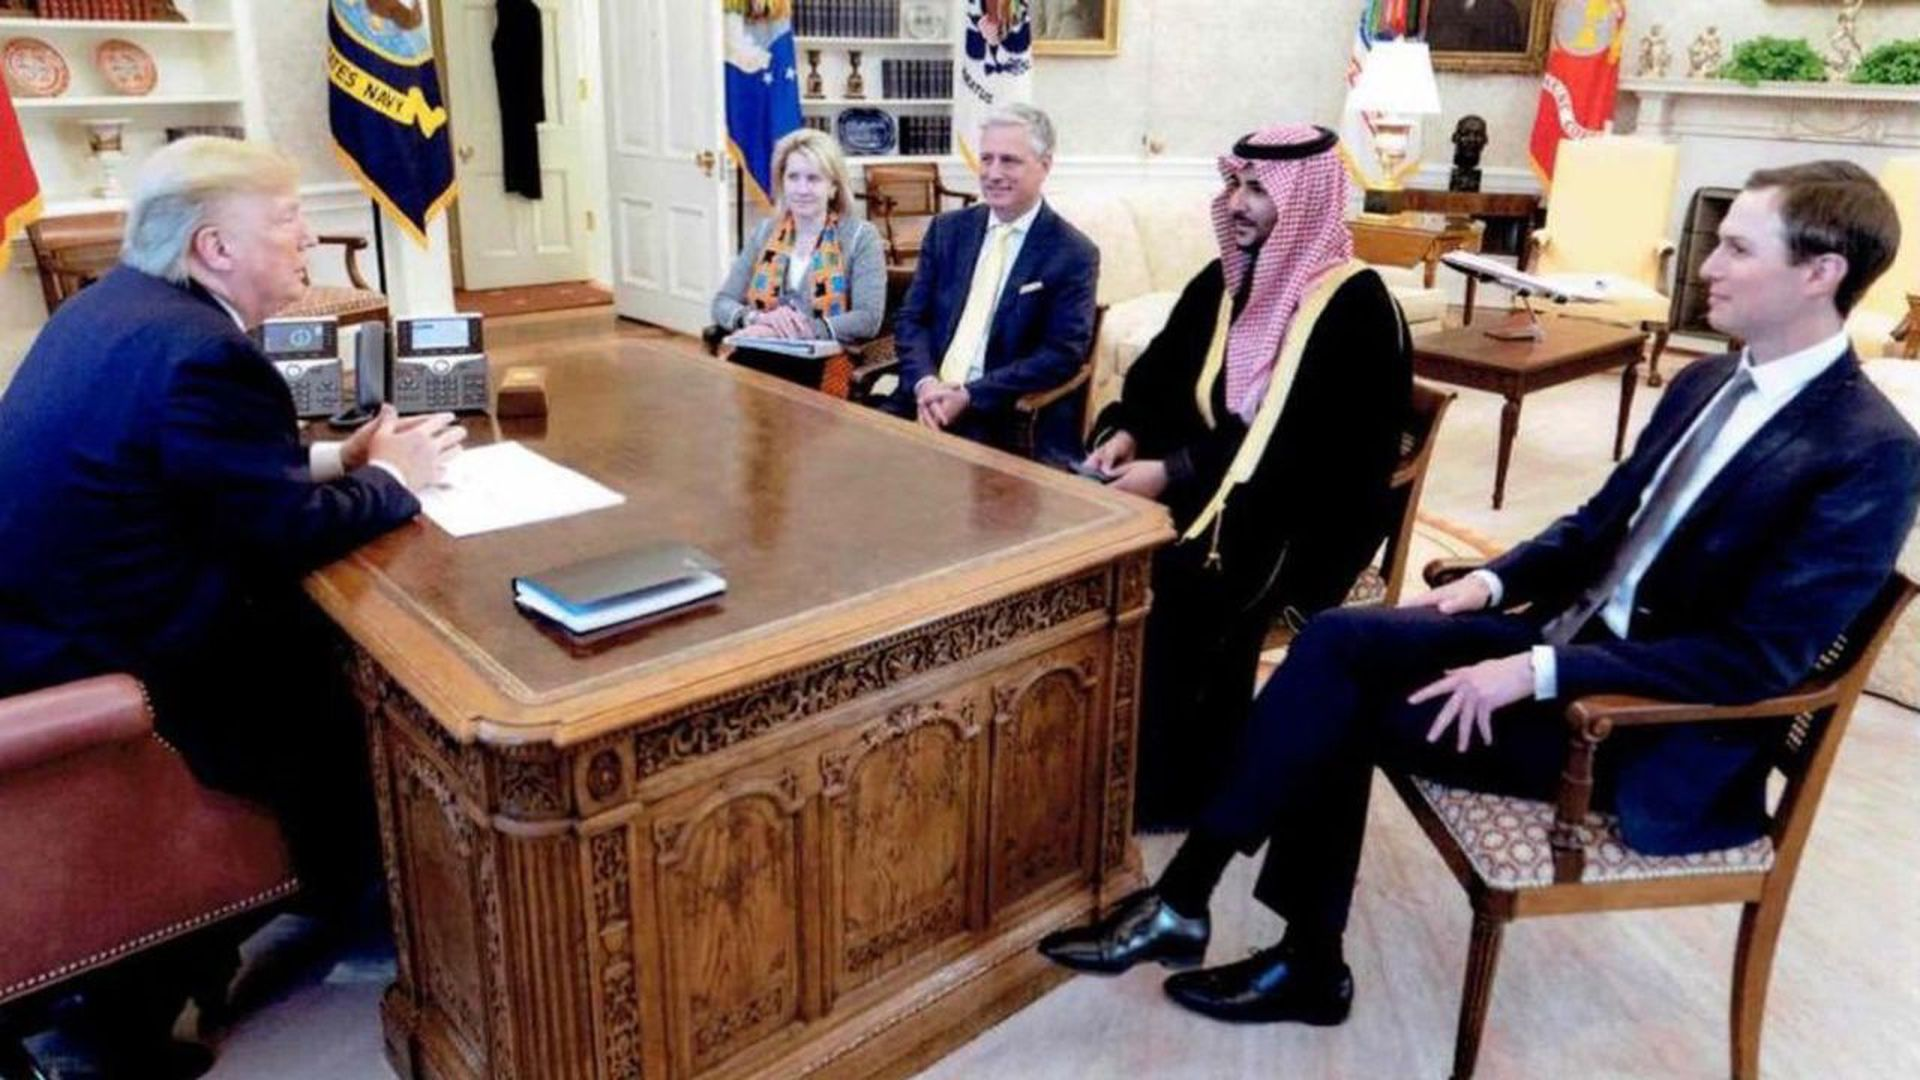 It is disturbing to see the government of Saudi Arabia have more transparency than the White House